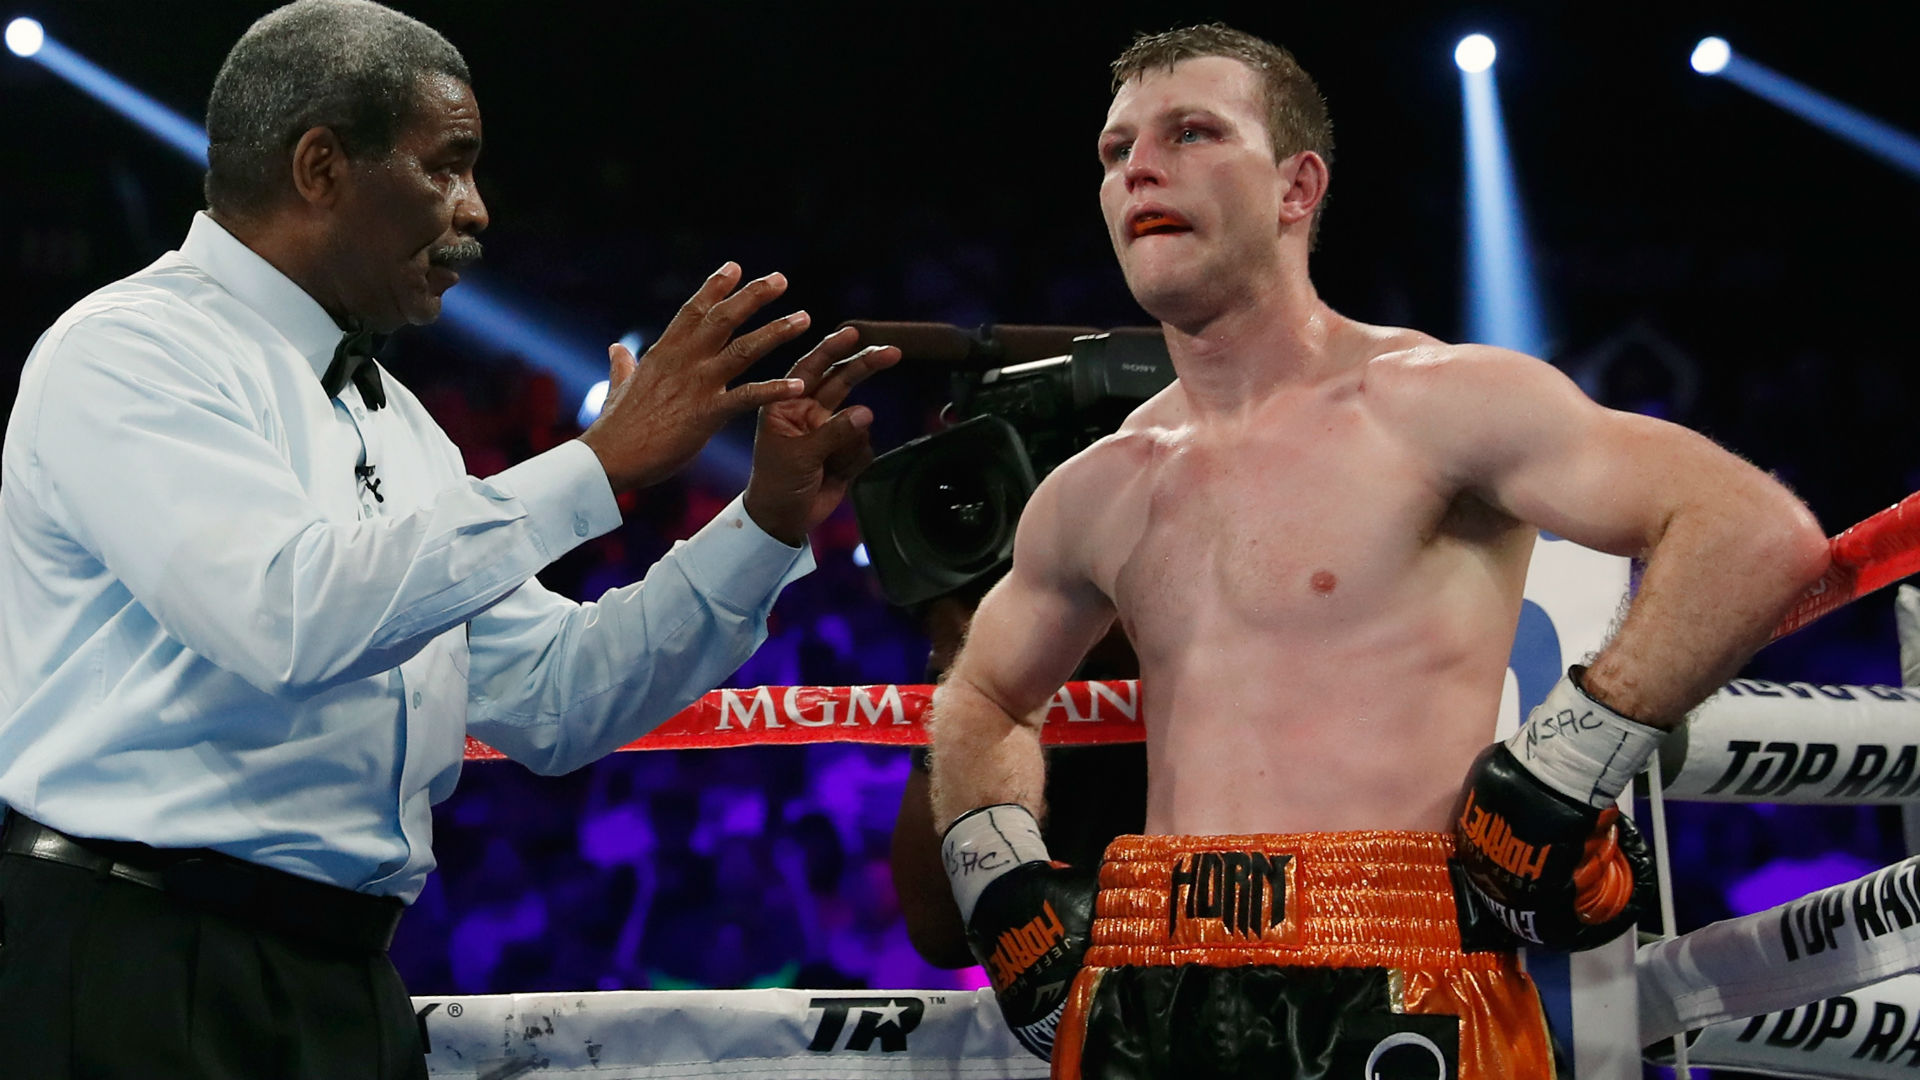 Jeff Horn vs Anthony Mundine: Jeff Horn looking to rebound from Terence Crawford defeat